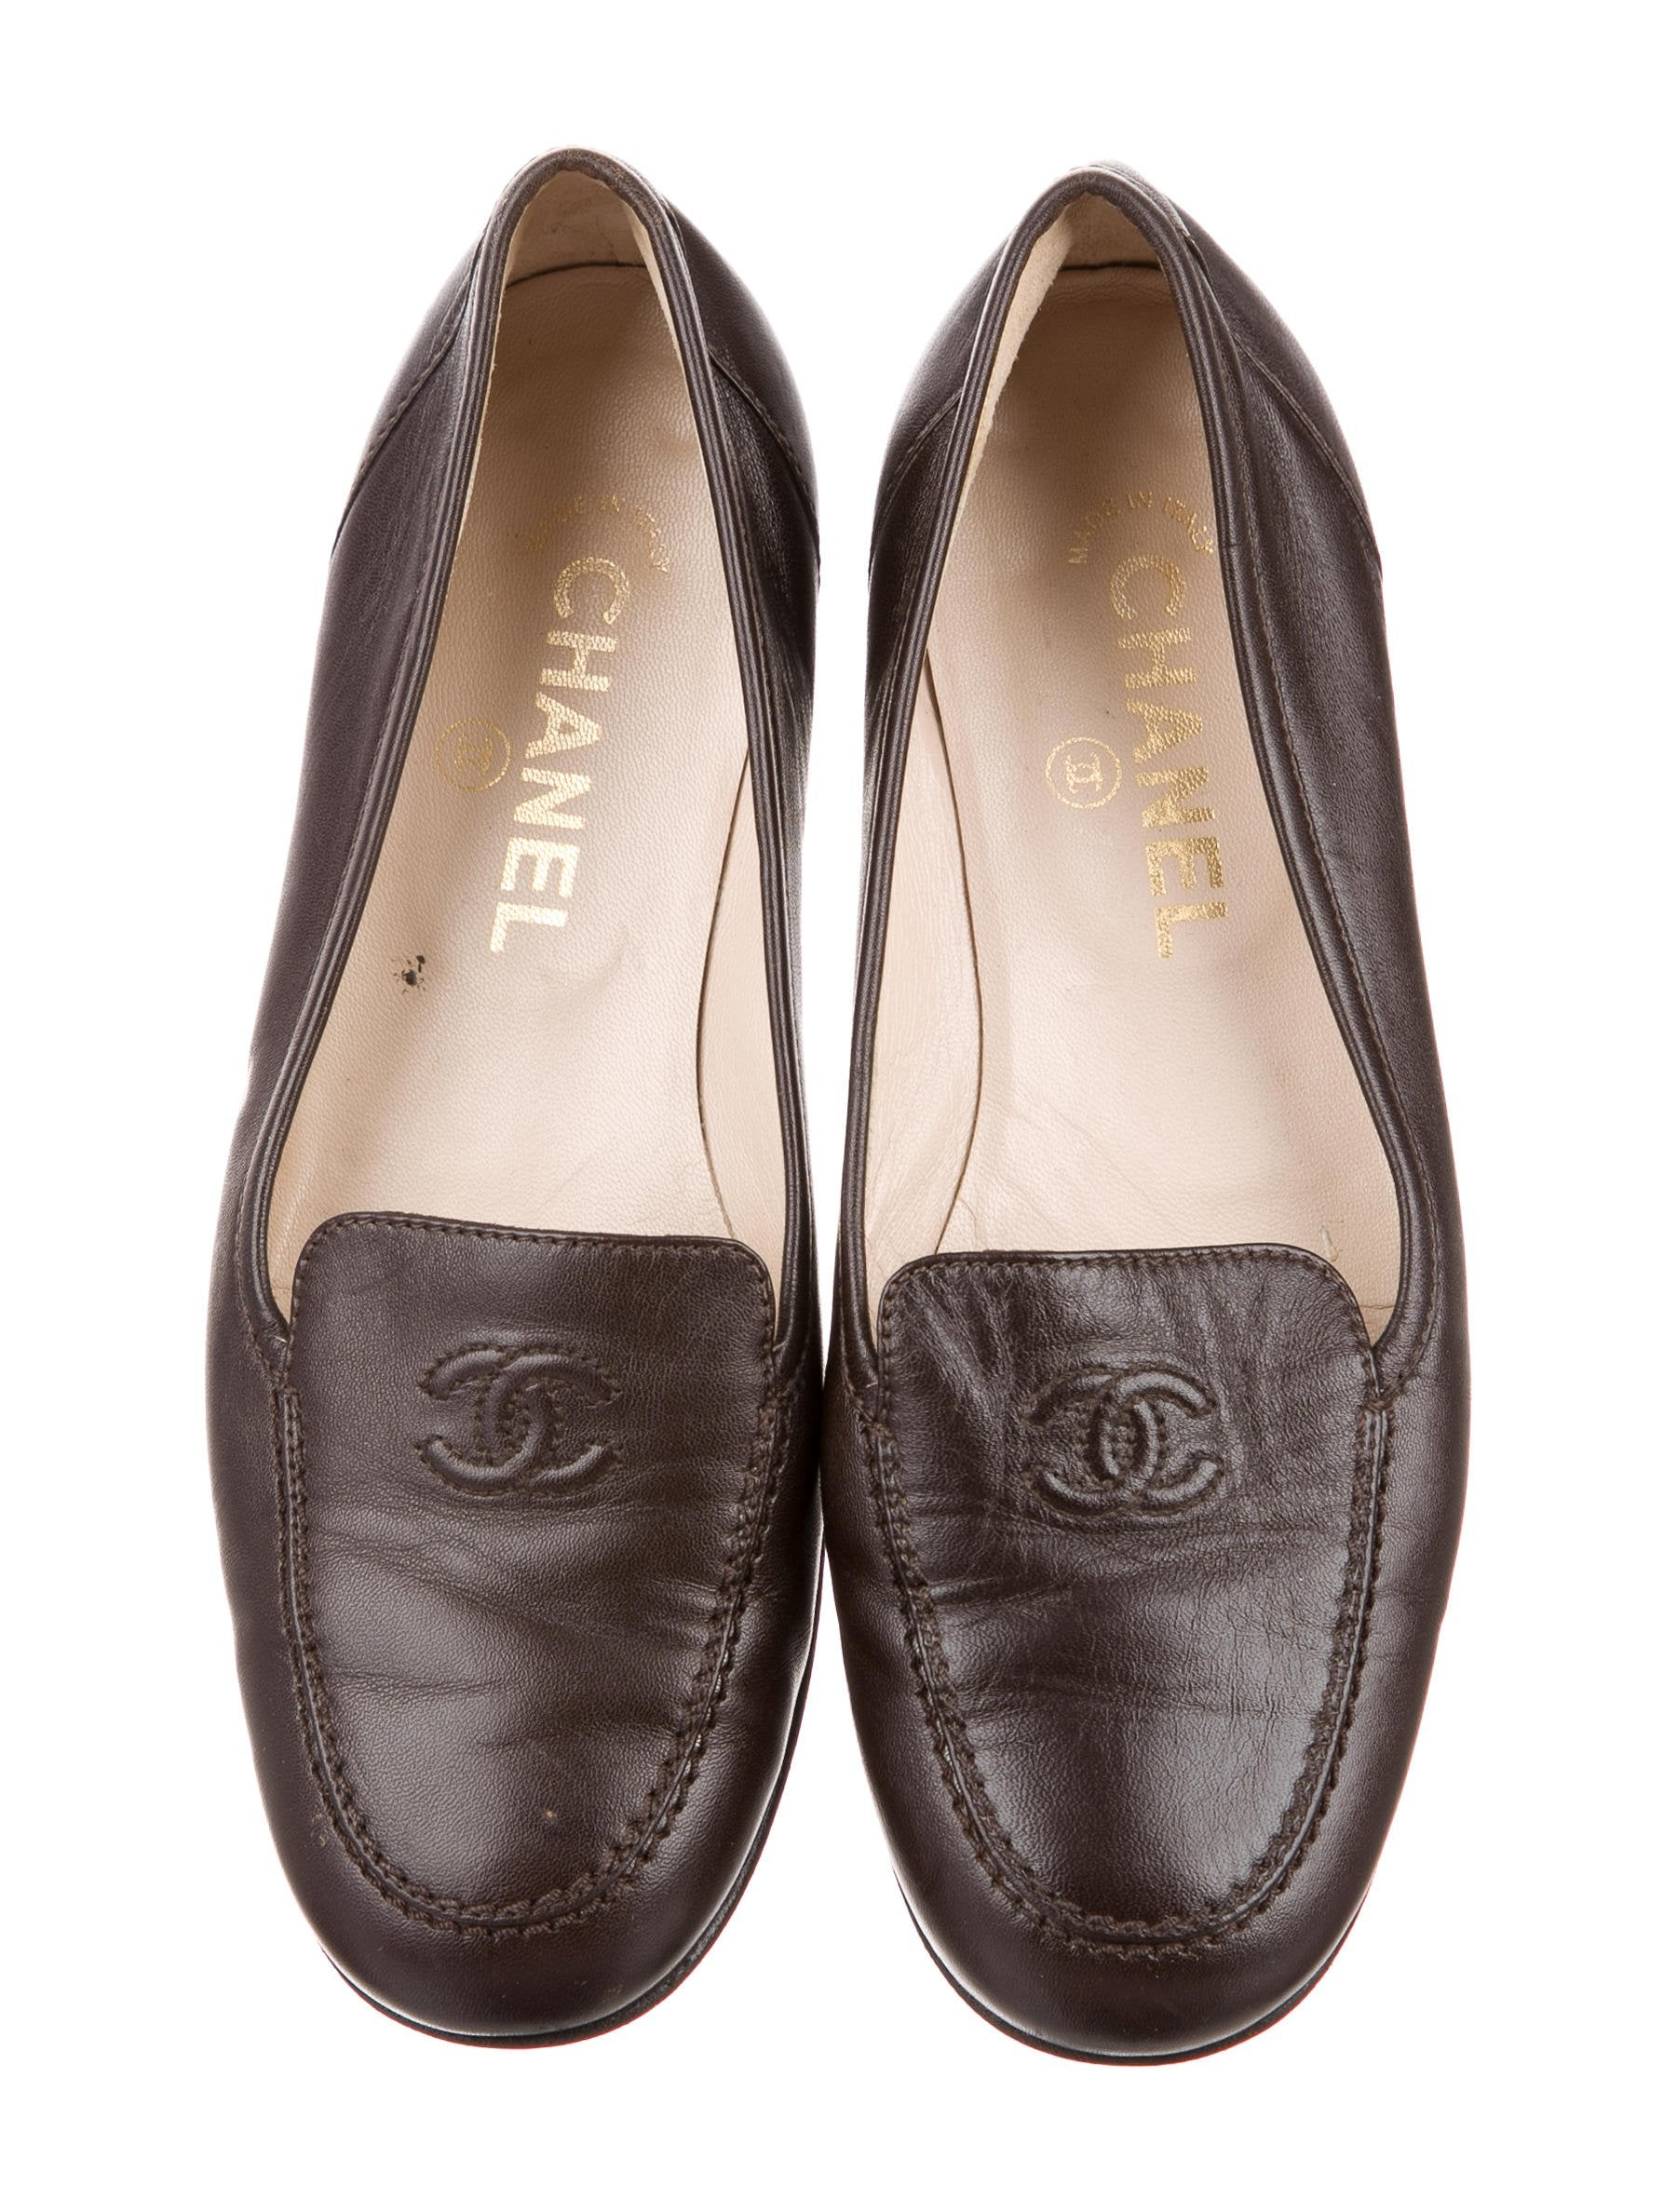 Chanel Leather CC Loafers - Shoes - CHA196310 | The RealReal